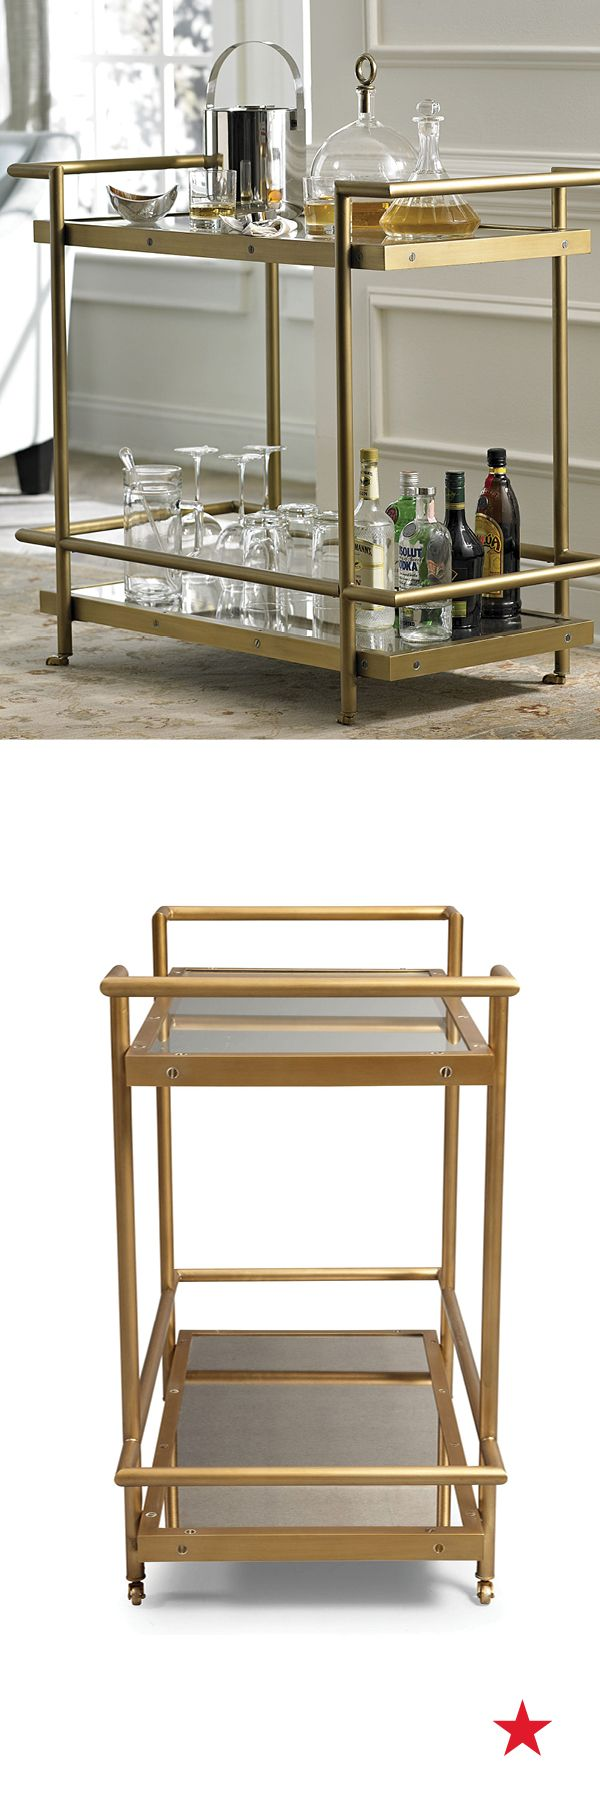 """Vitale bar cart — when it comes to hosting the perfect movie night or award show bash, a decked out concessions stand is a must! A luxe gold cart stocked with your favorite cocktail essentials and movie munchies takes the idea of a """"snack bar"""" to exciting new heights"""